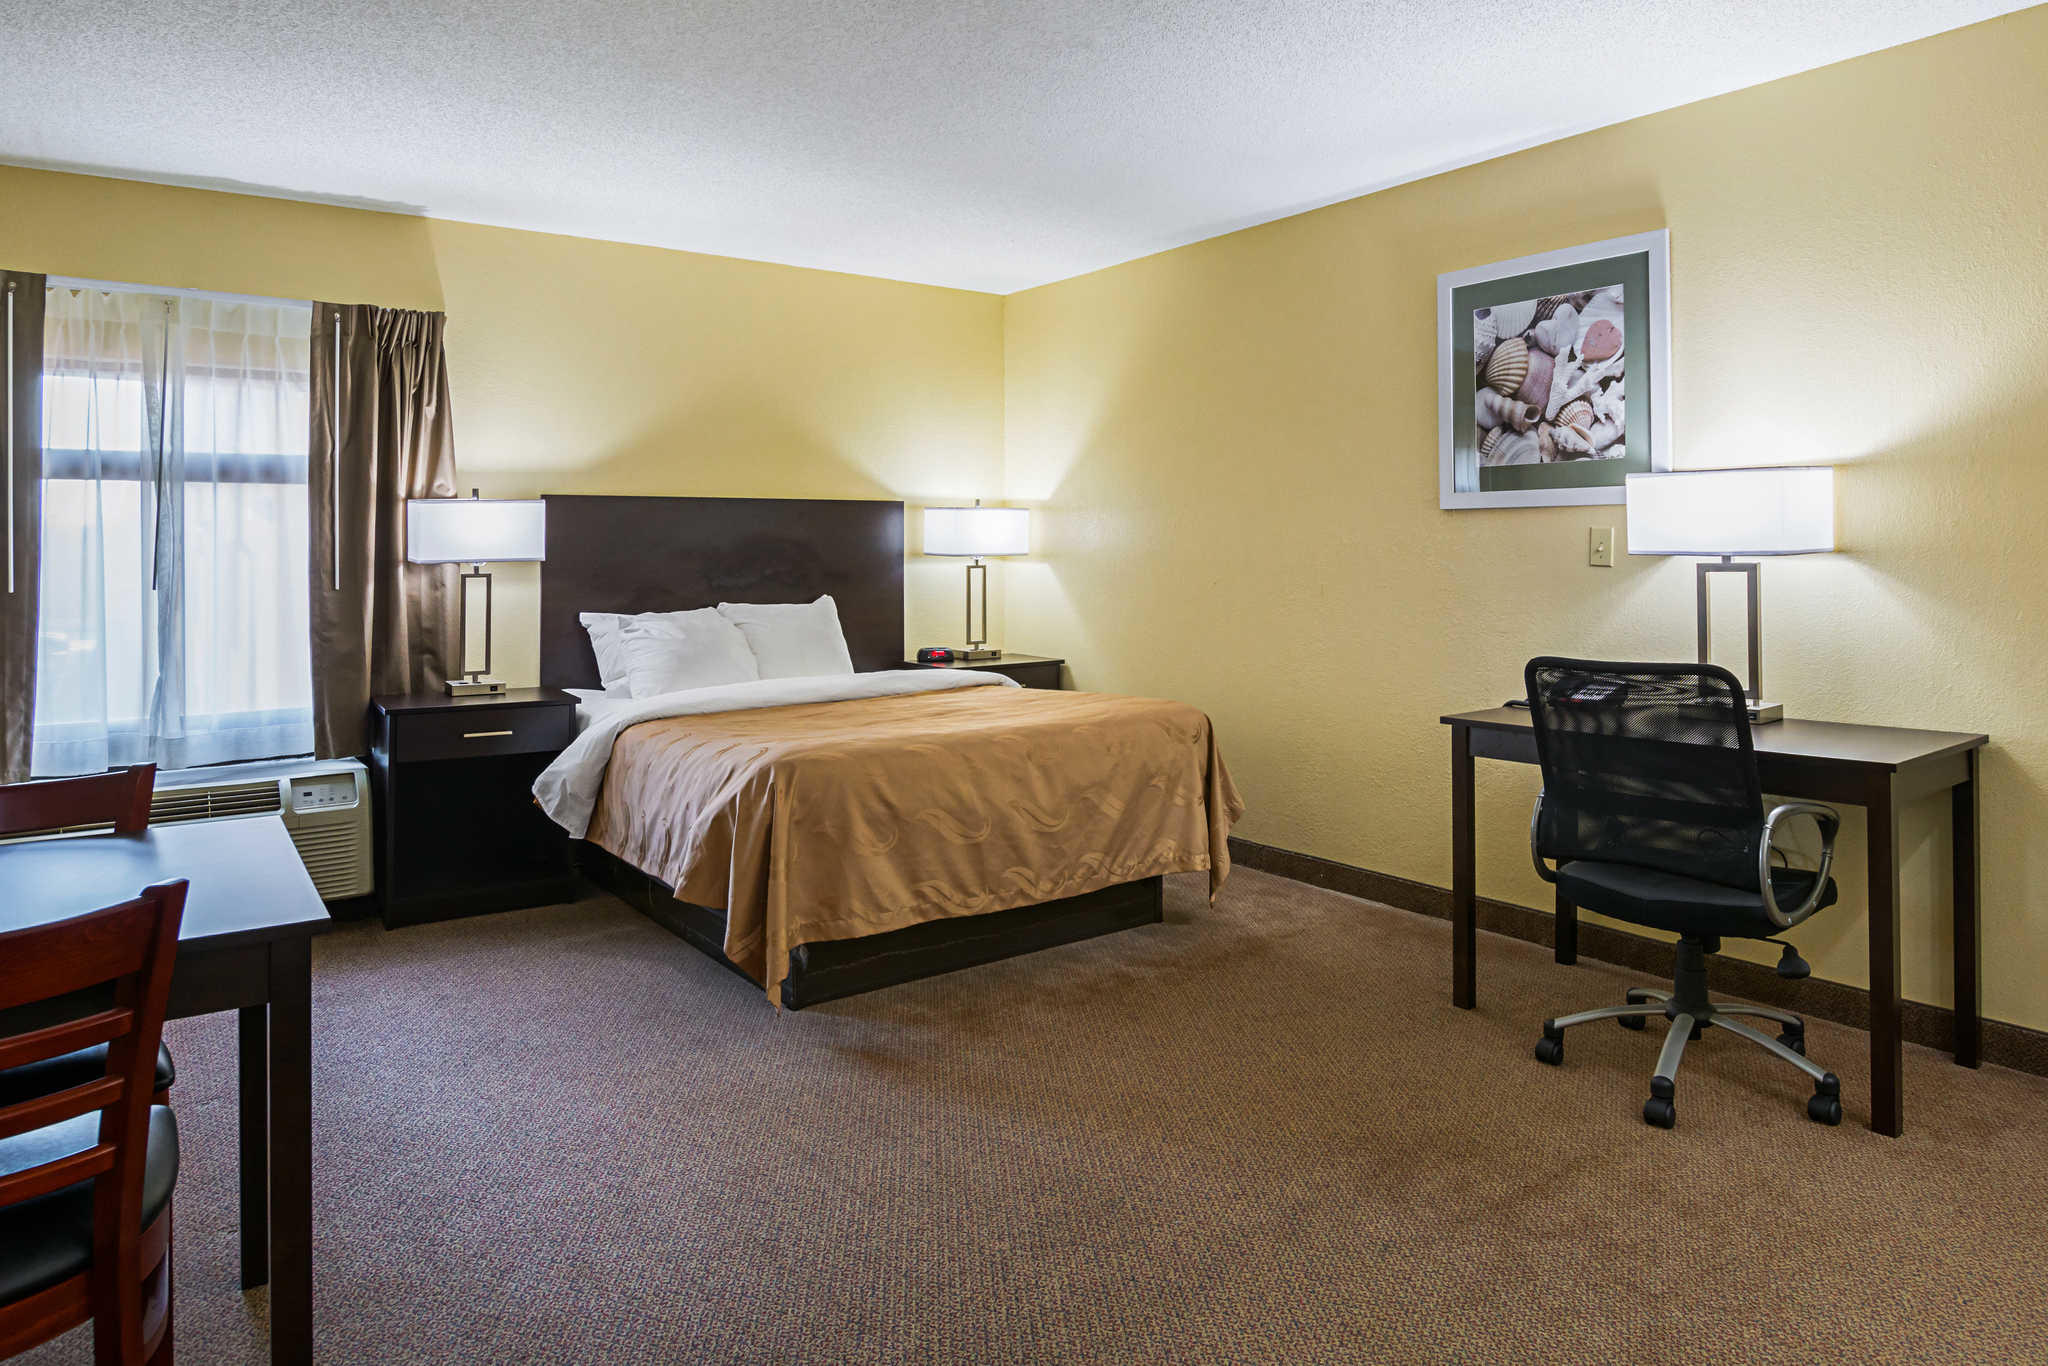 Quality Inn & Suites Greensburg I-74 image 16